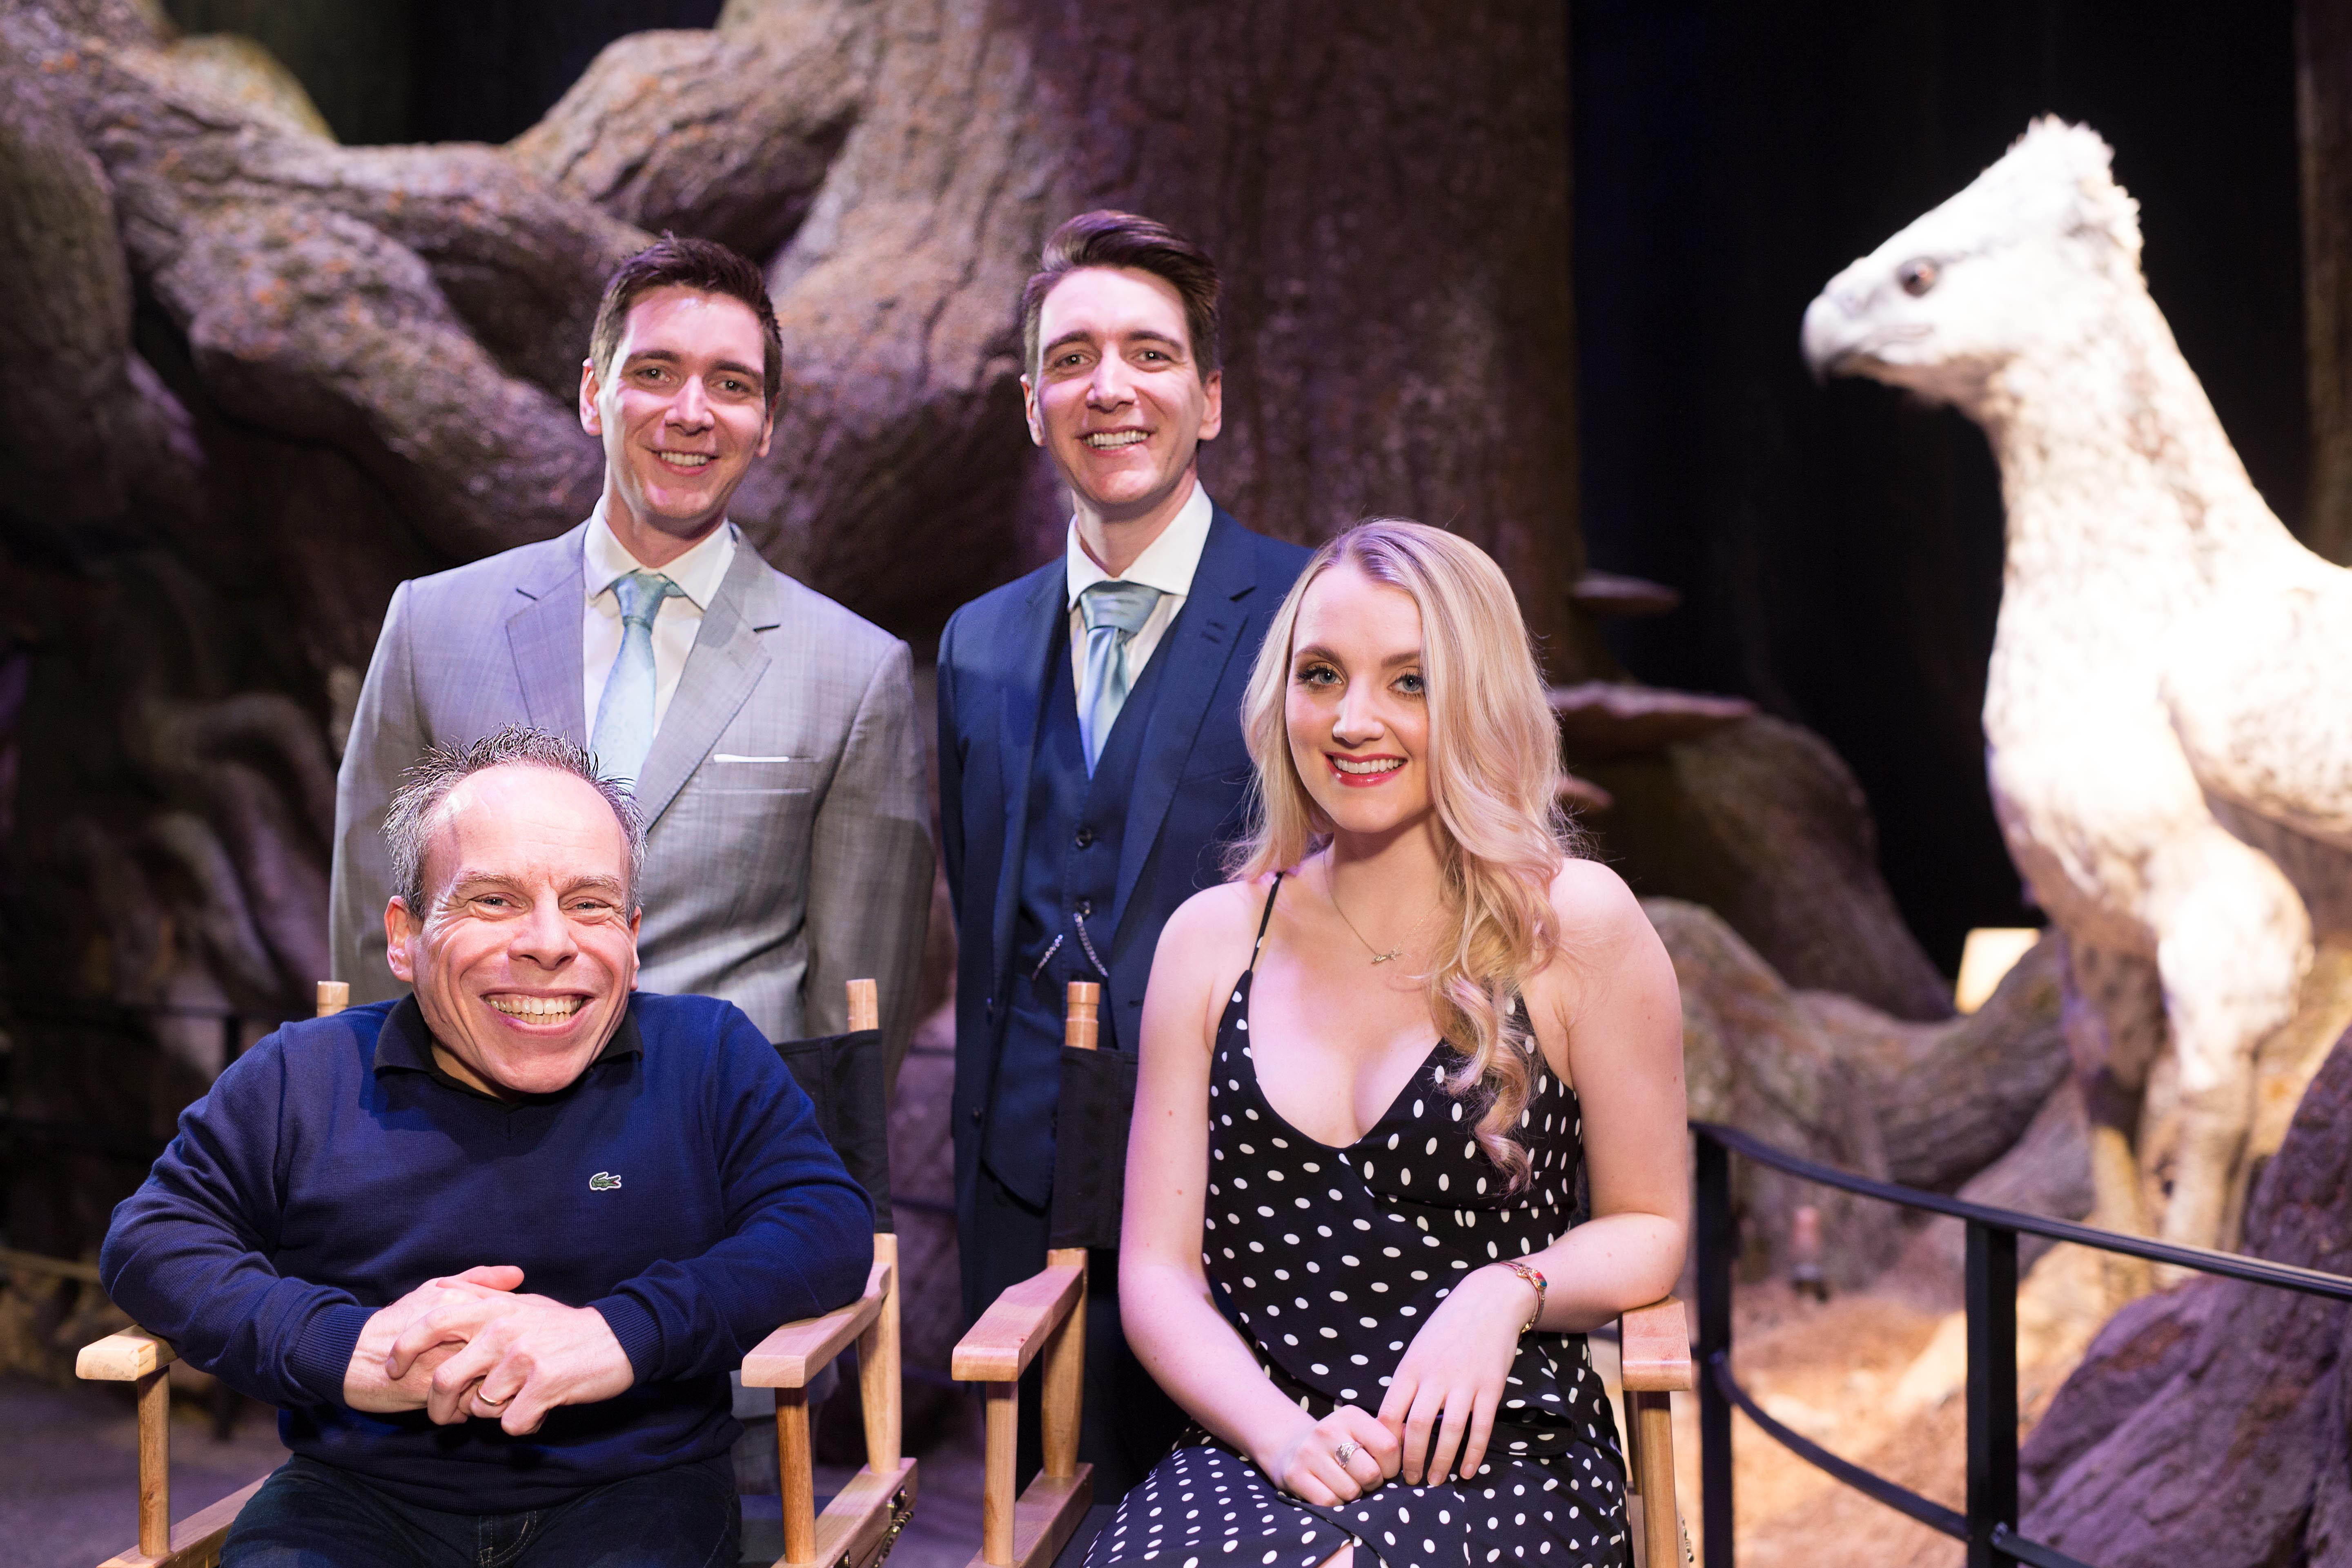 EDITORIAL USE ONLY L-R Warwick Davis, James Phelps, Oliver Phelps and Evanna Lynch who play Professor Flitwick, the Weasley Twins and Luna Lovegood in the Harry Potter film series during an exclusive visit to the new Forbidden Forest expansion at Warner Bros. Studio Tour London – The Making of Harry Potter, which opens to the public on March 31st. PRESS ASSOCIATION Photo. Picture date: Tuesday March 28, 2017. Photo credit should read: David Parry/PA Wire